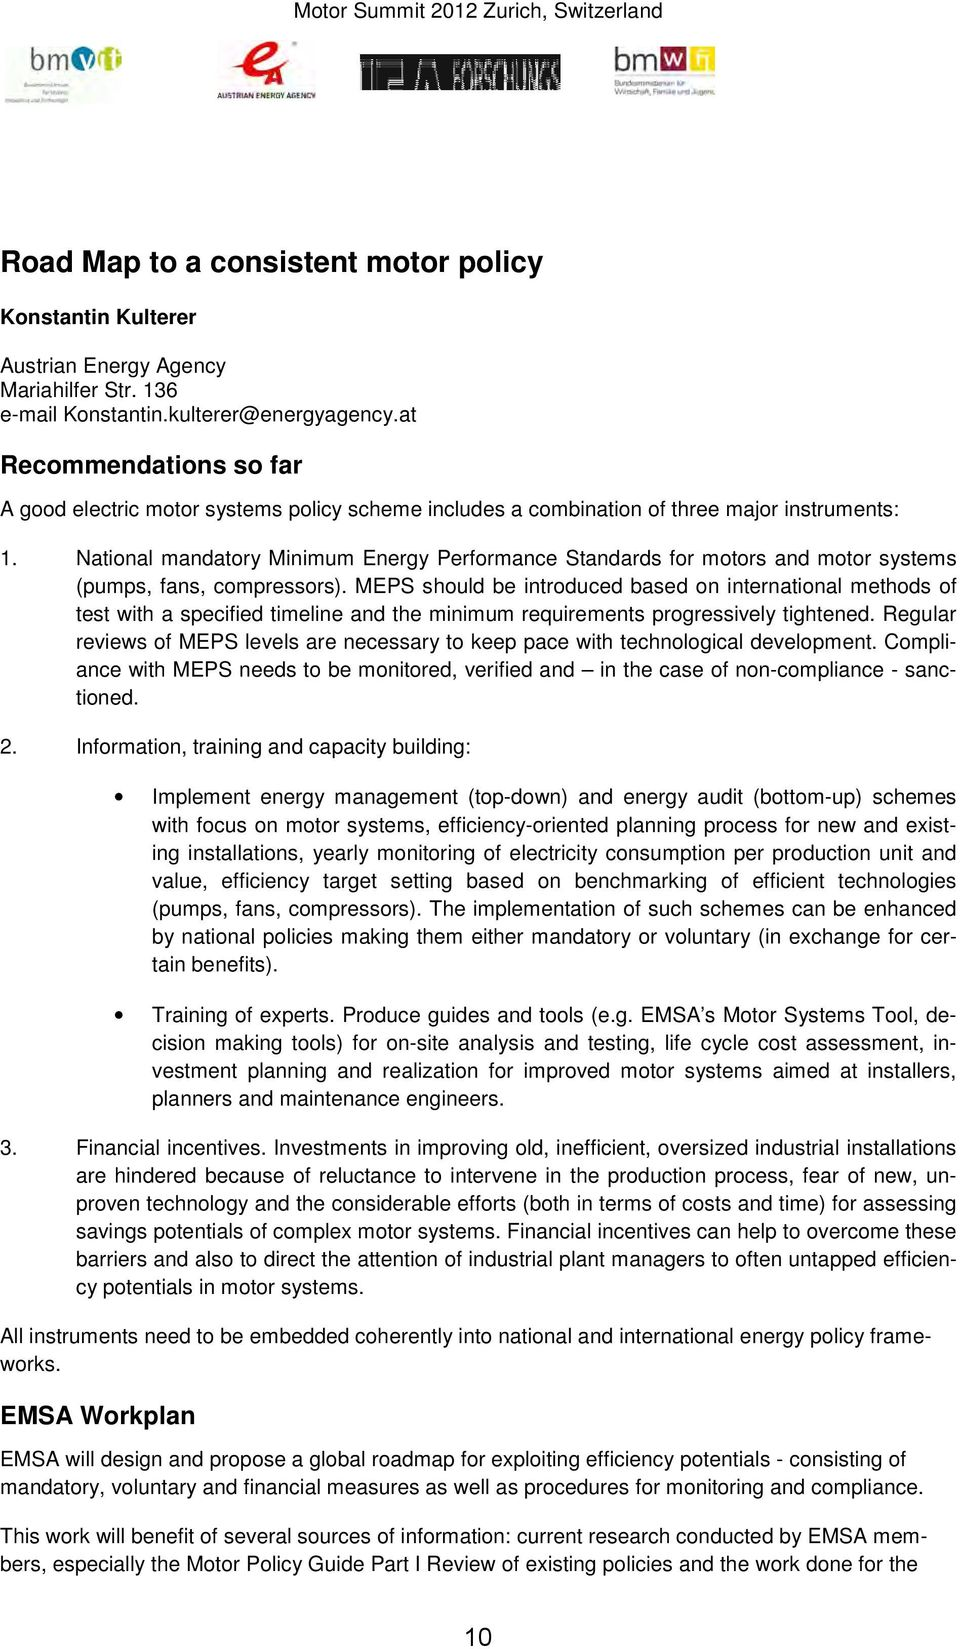 National mandatory Minimum Energy Performance Standards for motors and motor systems (pumps, fans, compressors).